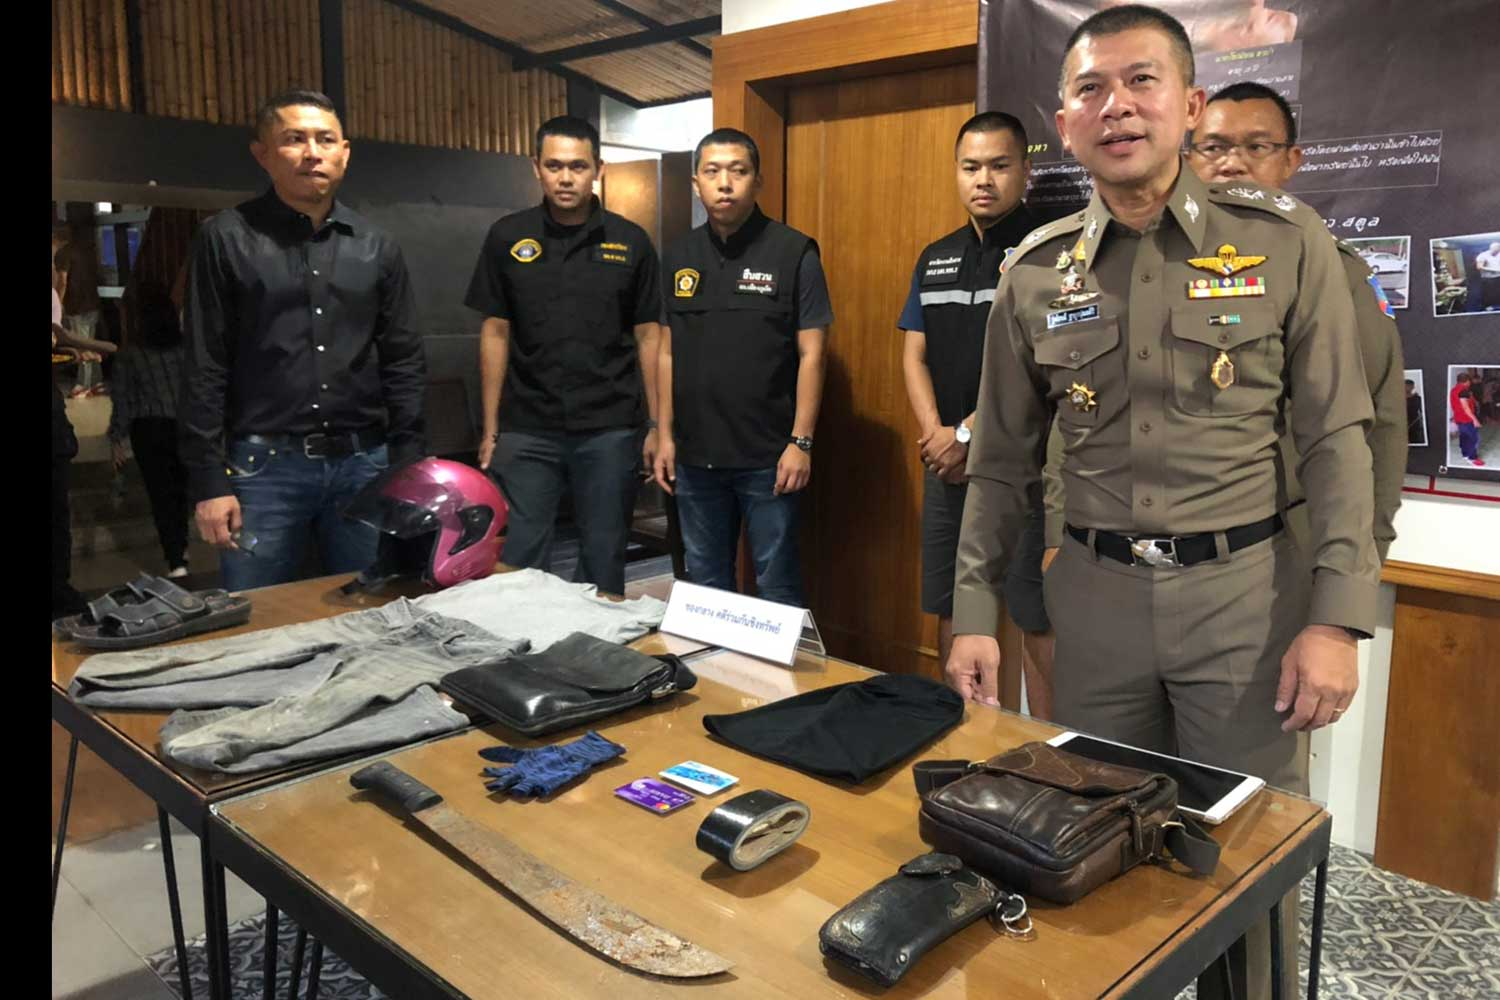 Police display items seized from the two men charged with injuring and robbing a German man, 70, and his wife at their house in Phuket last Thursday. (Photo taken from Phuket-based media, @siantai1234 Facebook page)